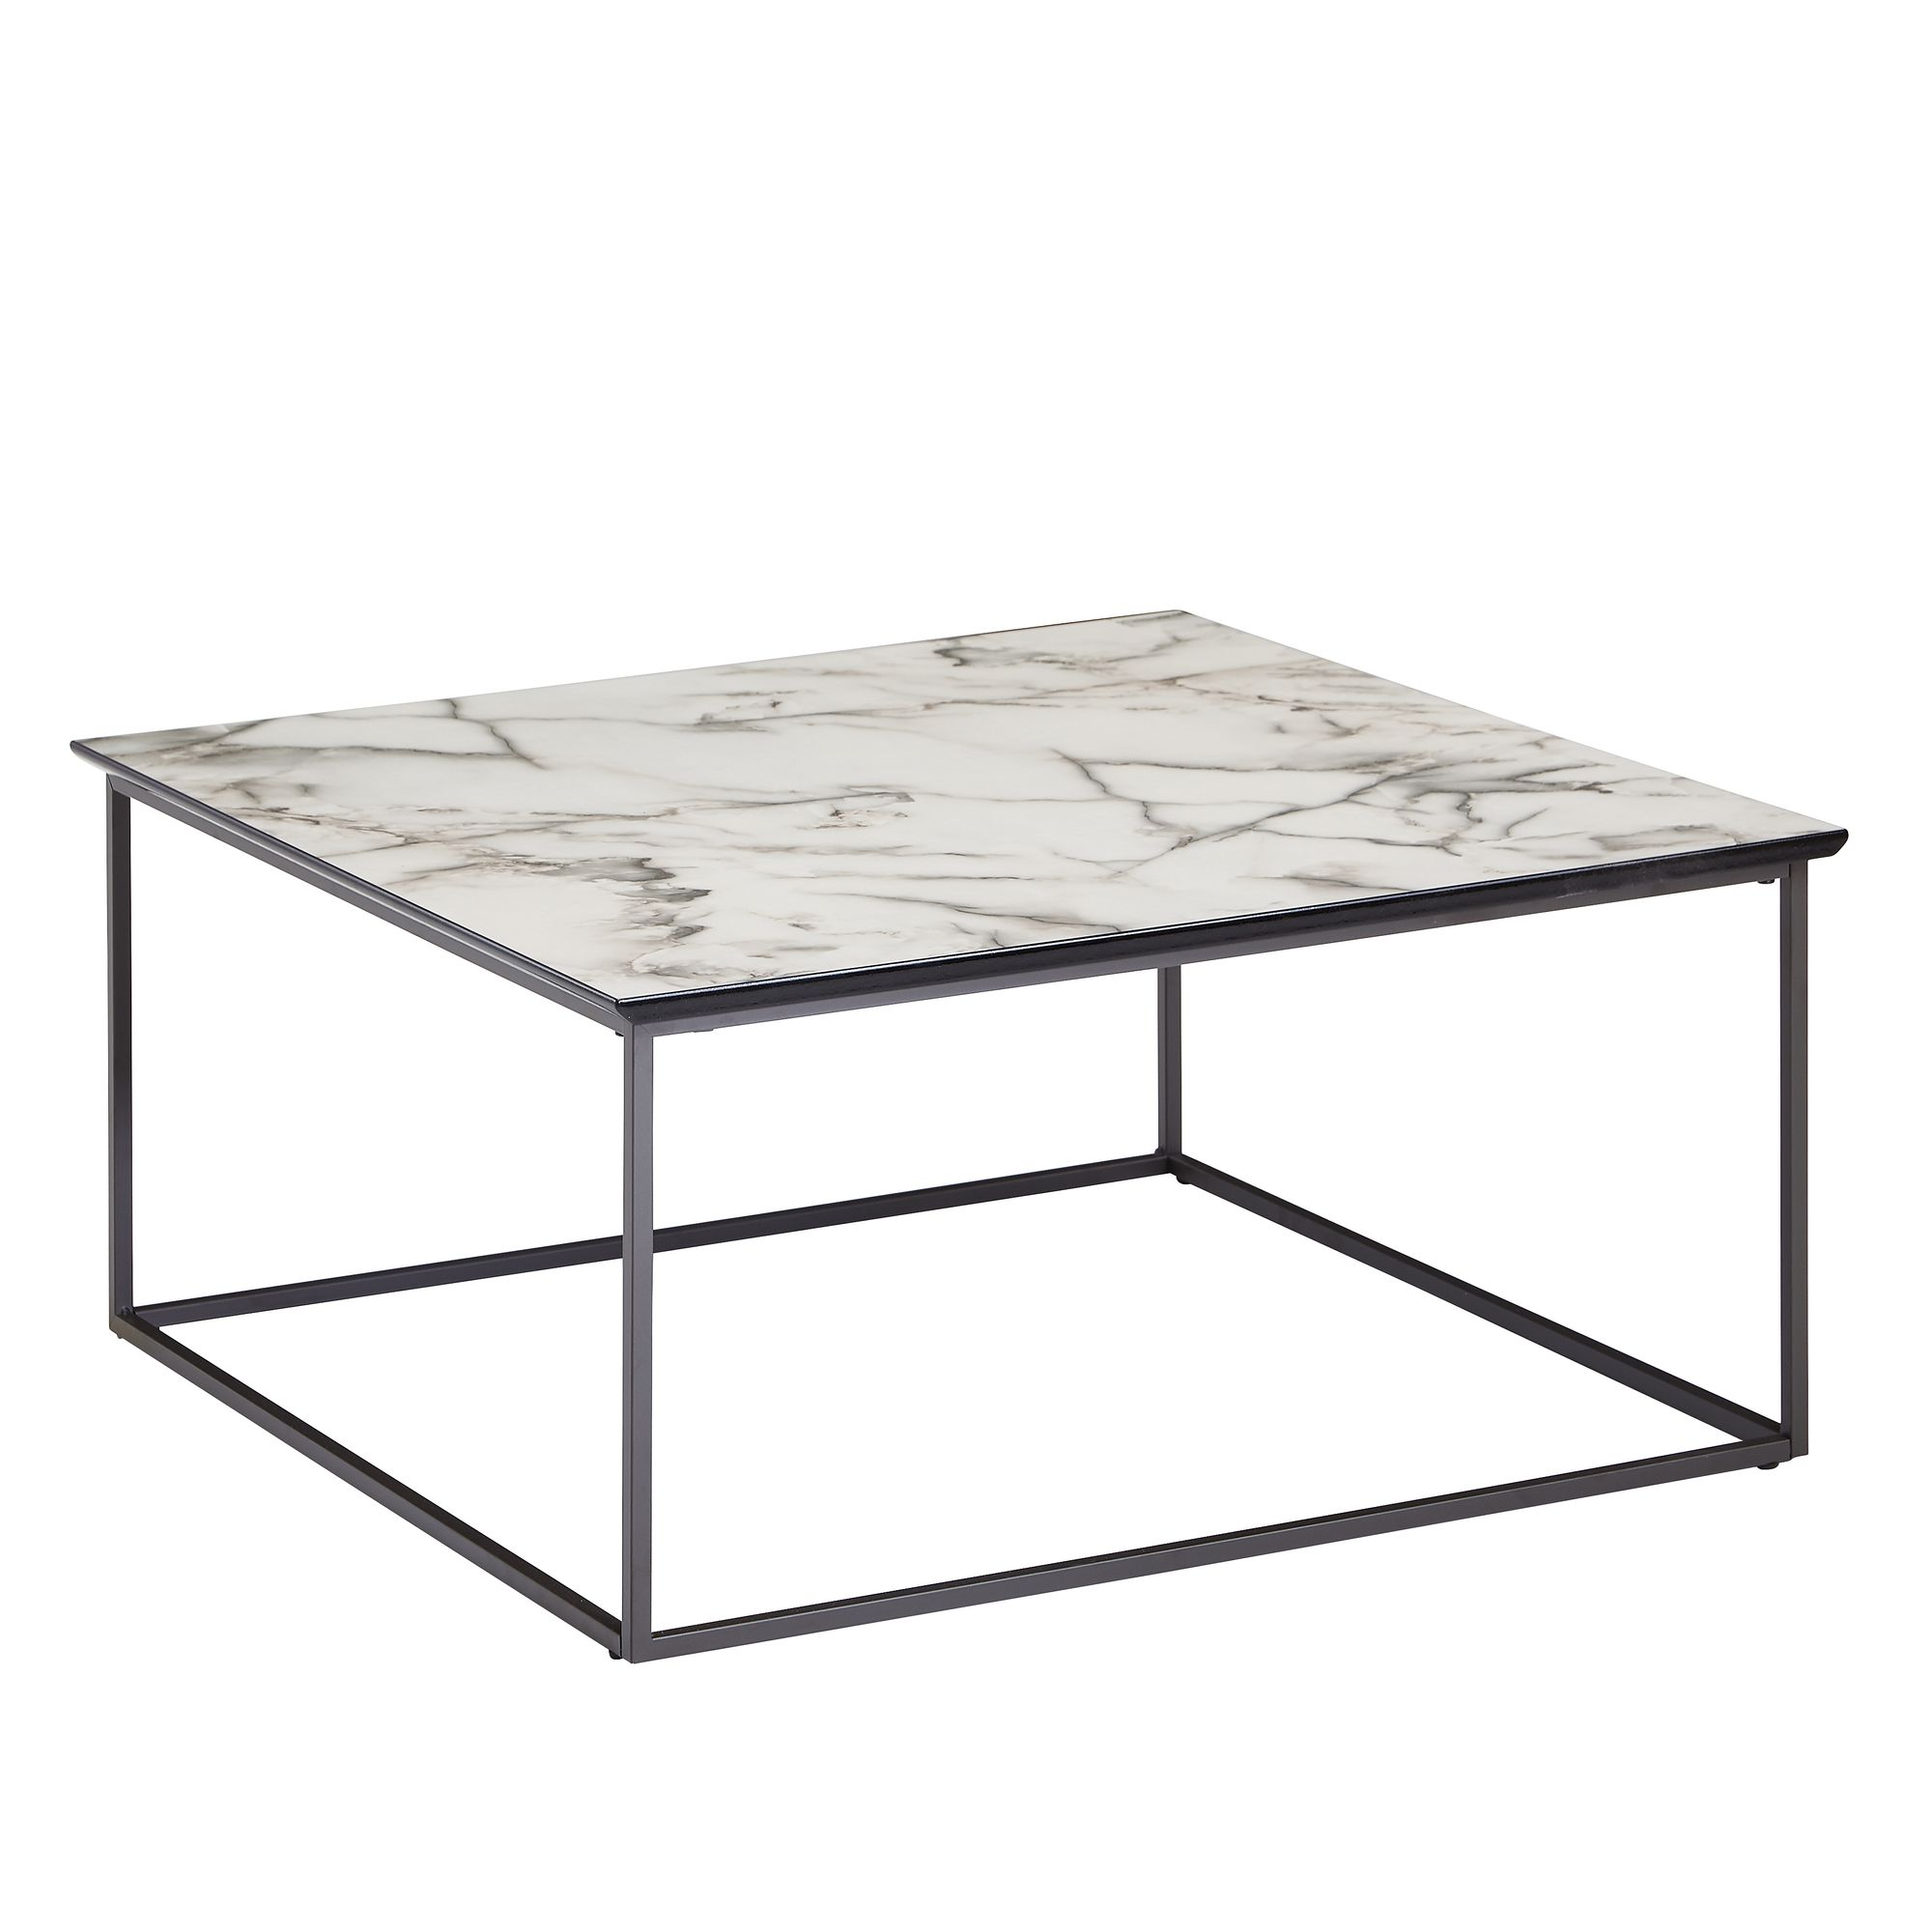 Wohnling Couchtisch Coffee Table Square 80x38x80 Cm With Marble Look White • Artkomfort